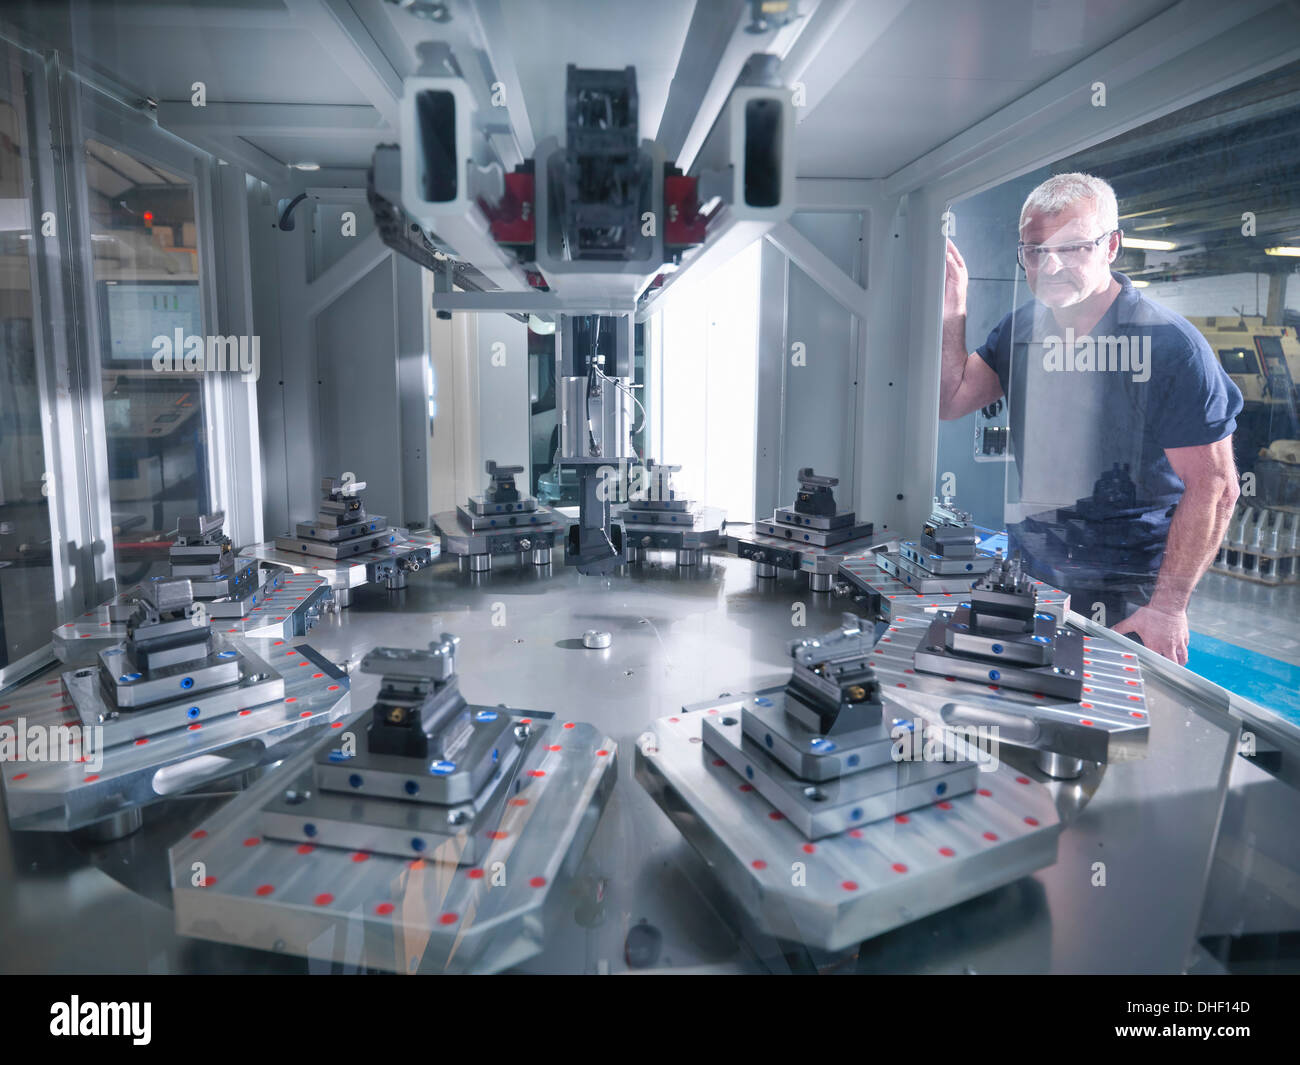 Engineer inspecting automatic lathe in factory - Stock Image